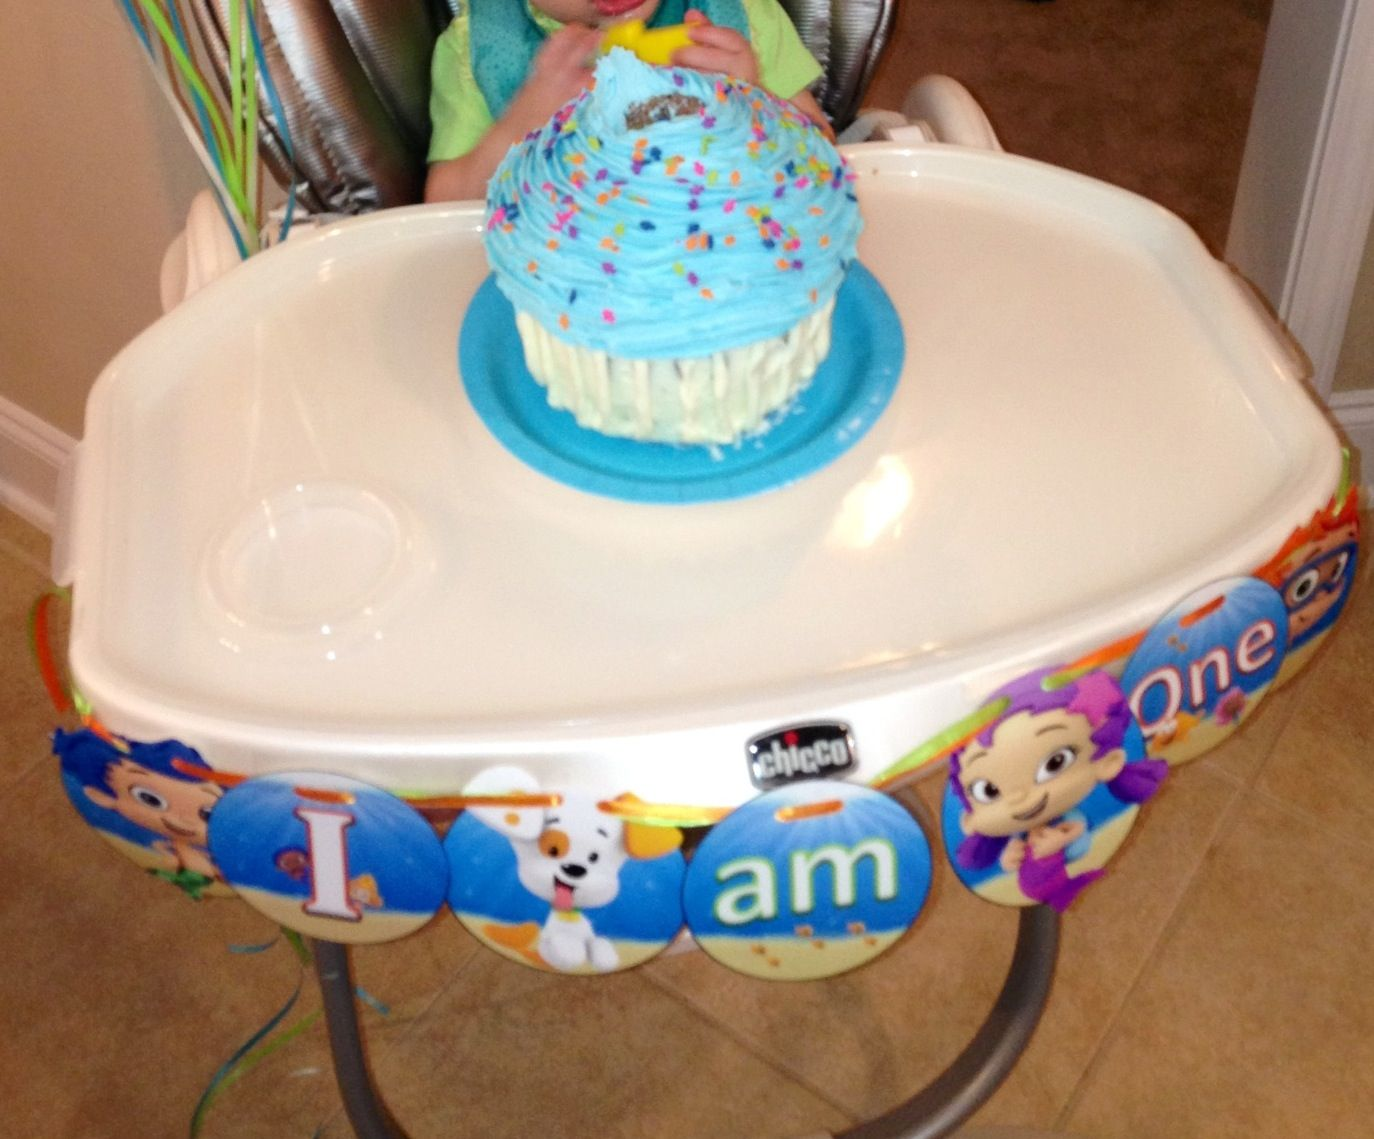 High Chair Decorations 2nd BirthdayBirthday PartiesBirthday Party IdeasBubble Guppies